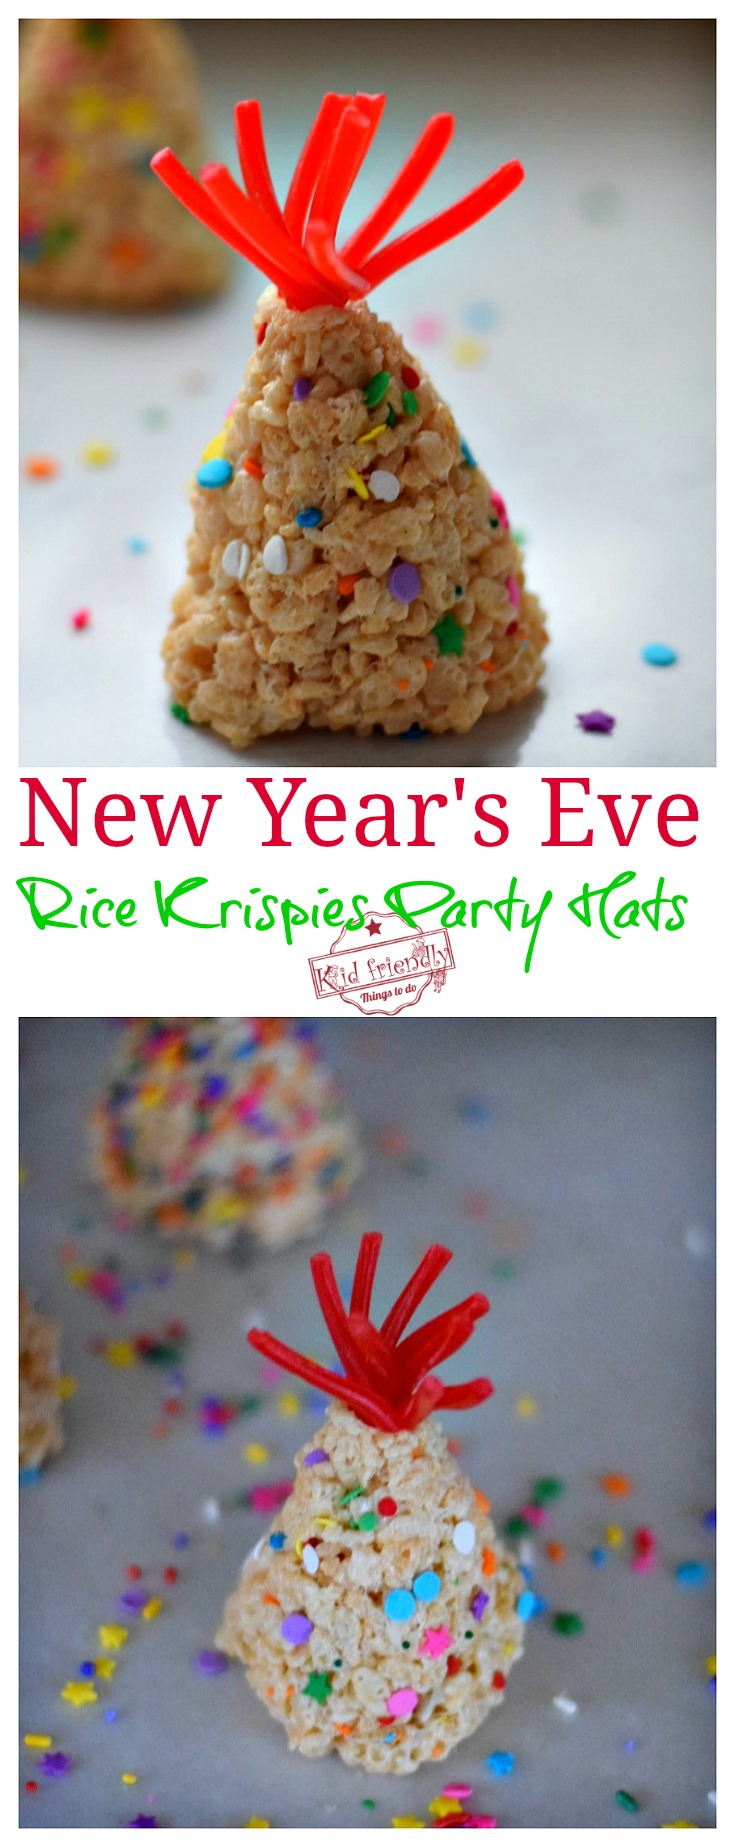 New Year's Eve Rice Krispies Treat Party Hats for a Fun Kid Friendly Treat - Ring in the New Year with these yummy treats - www.kidfriendlythingstodo.com